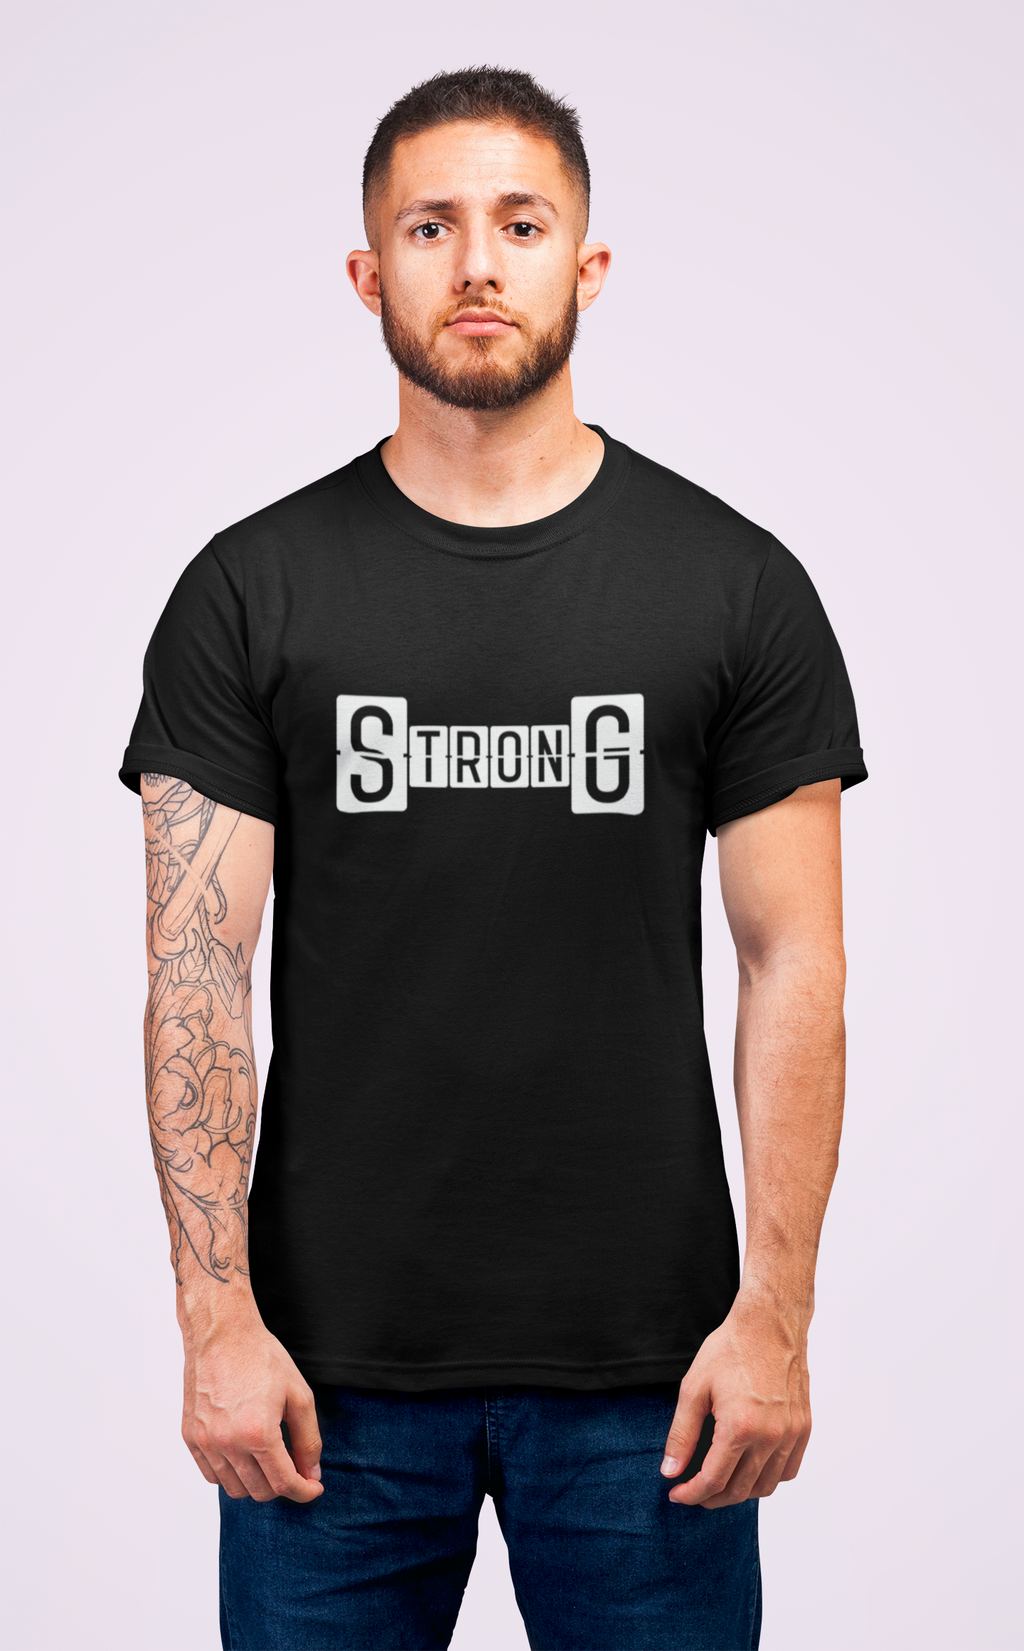 Strong Gym T-shirts for Men by SuprCrowd - SuprCrowd